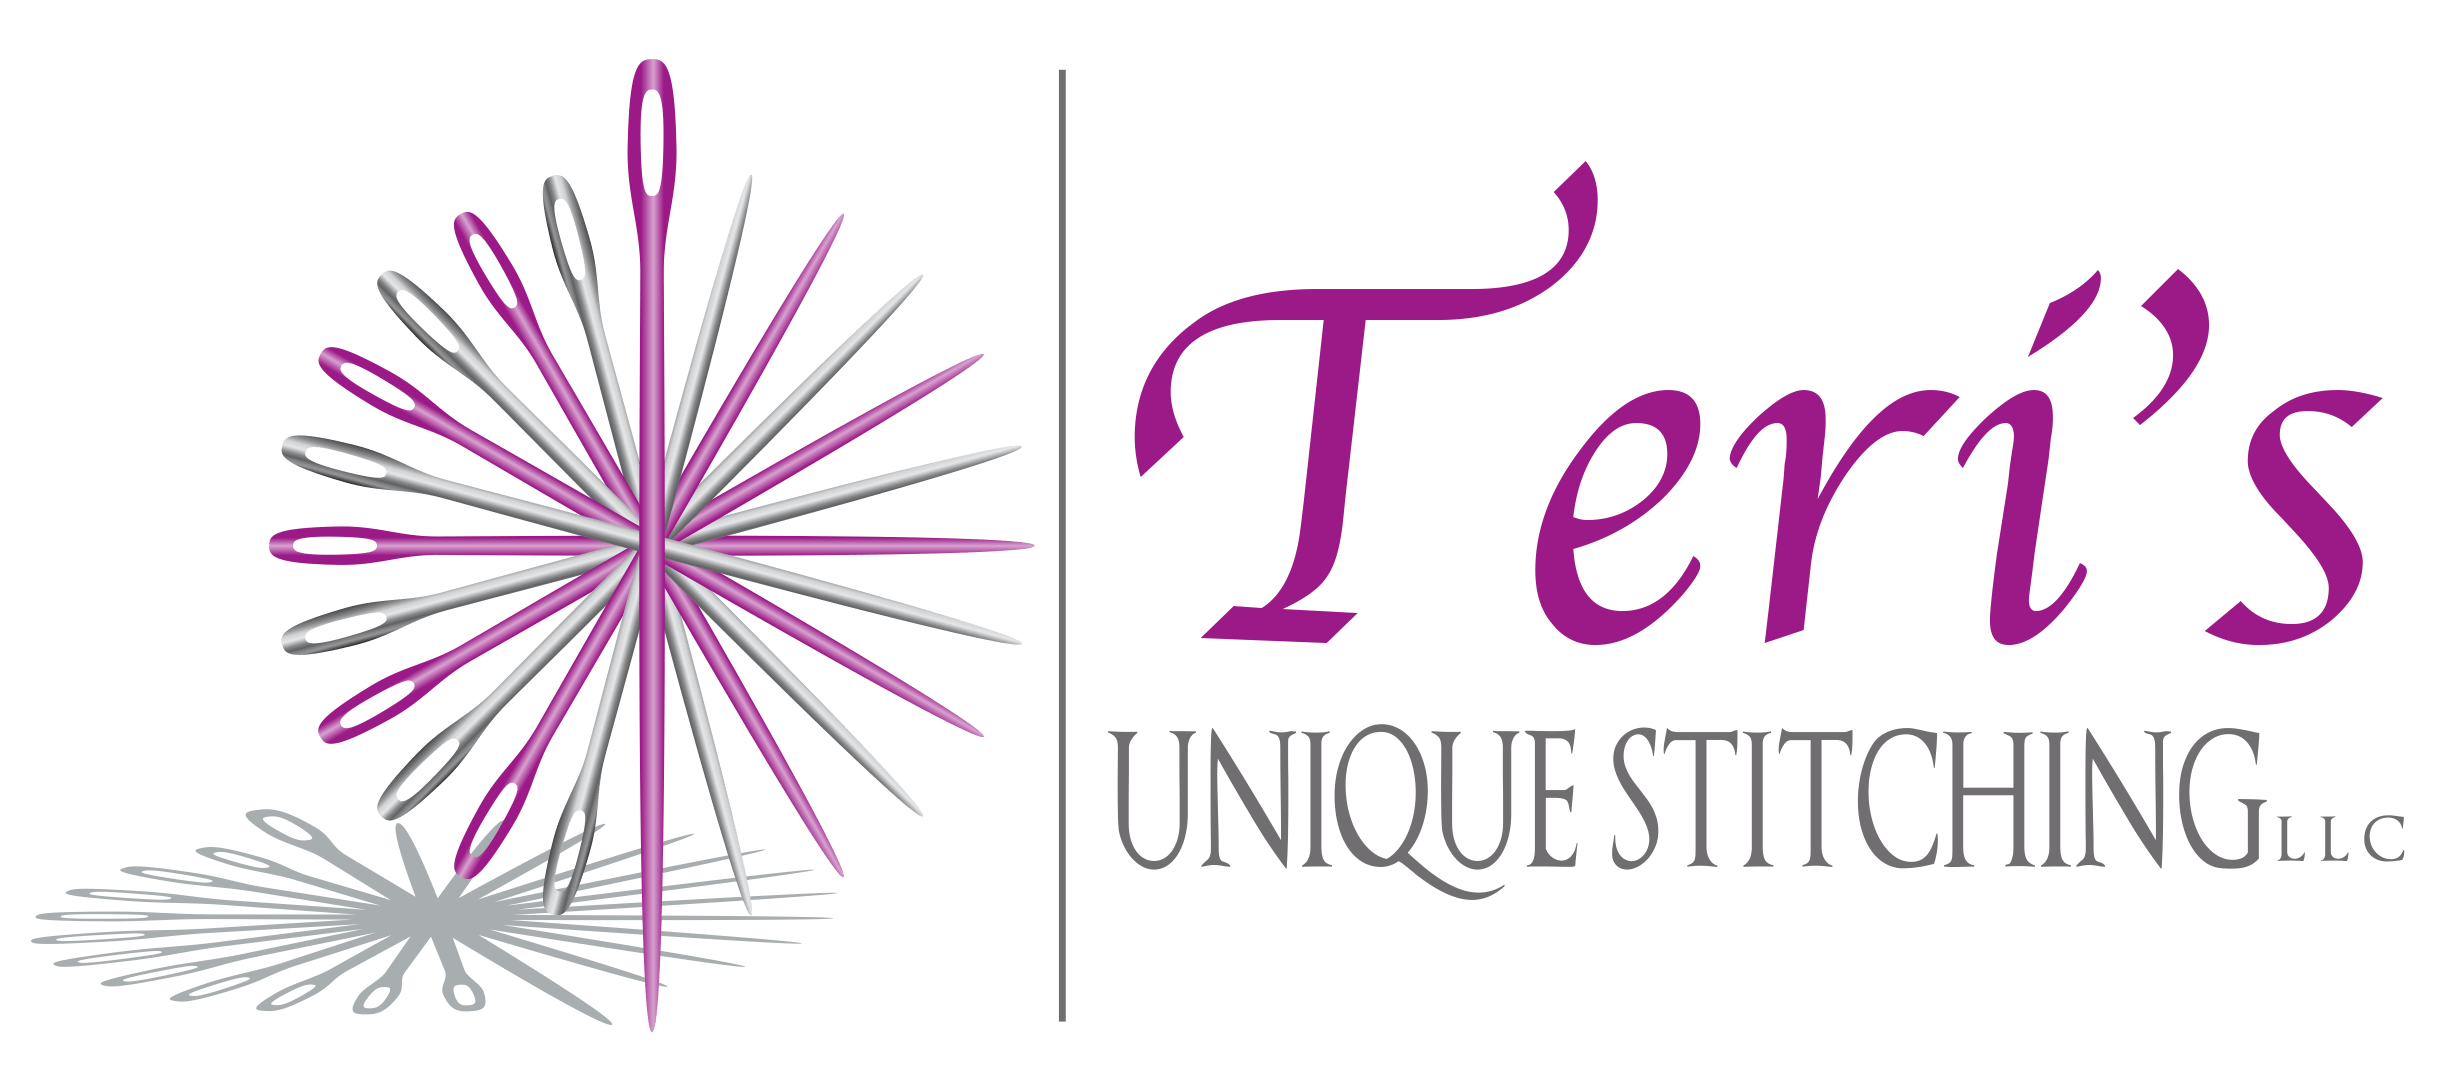 Teri's Unique Stitching, LLC